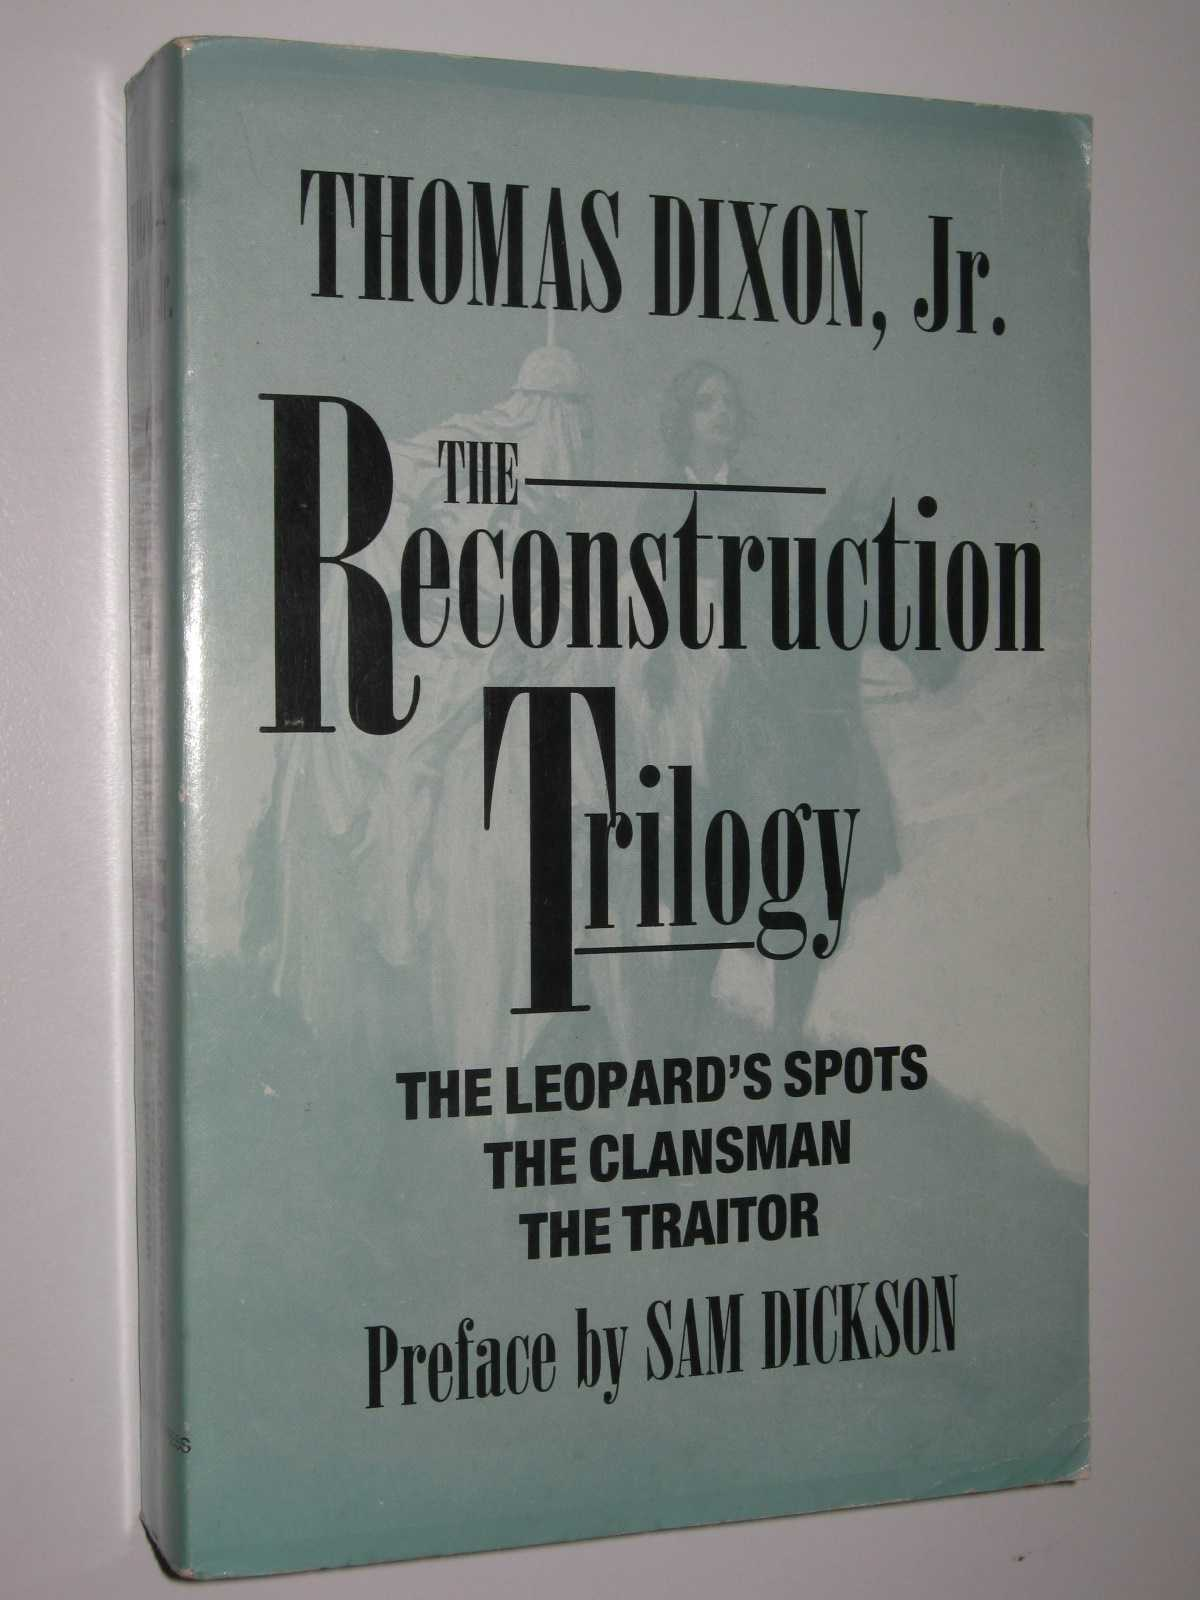 Image for The Reconstruction Trilogy : The Leopard's Spots + The Clansman + The Traitor